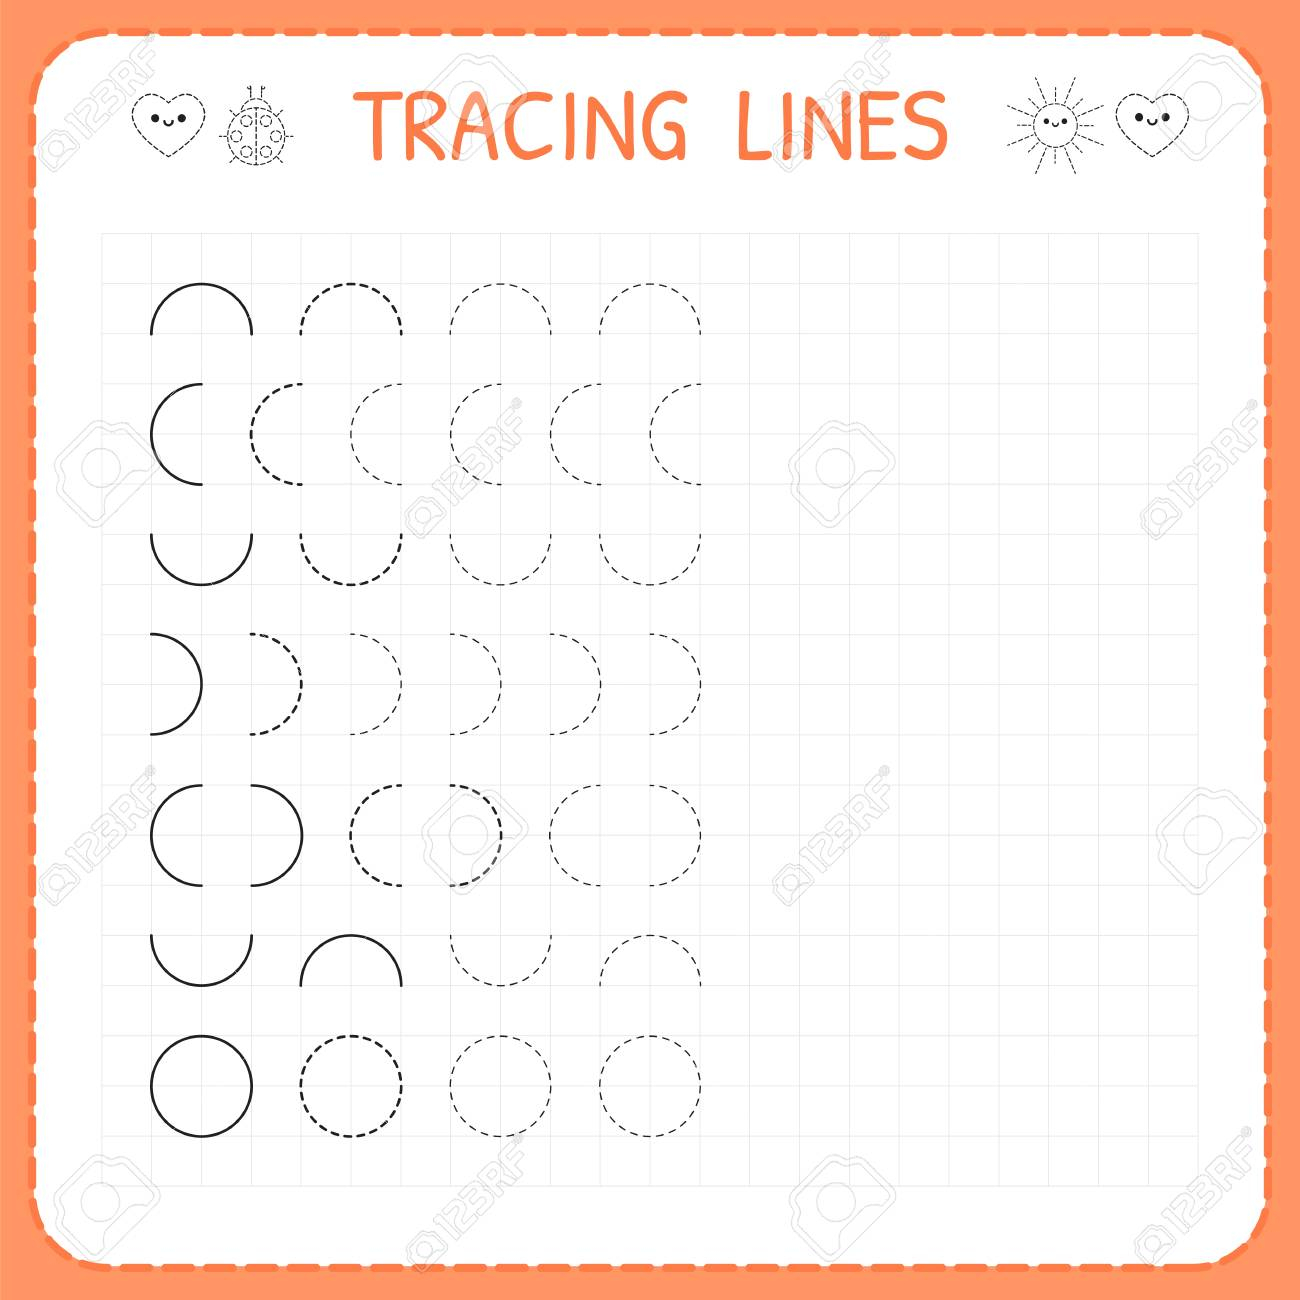 Tracing Font For Kindergarten With Lines